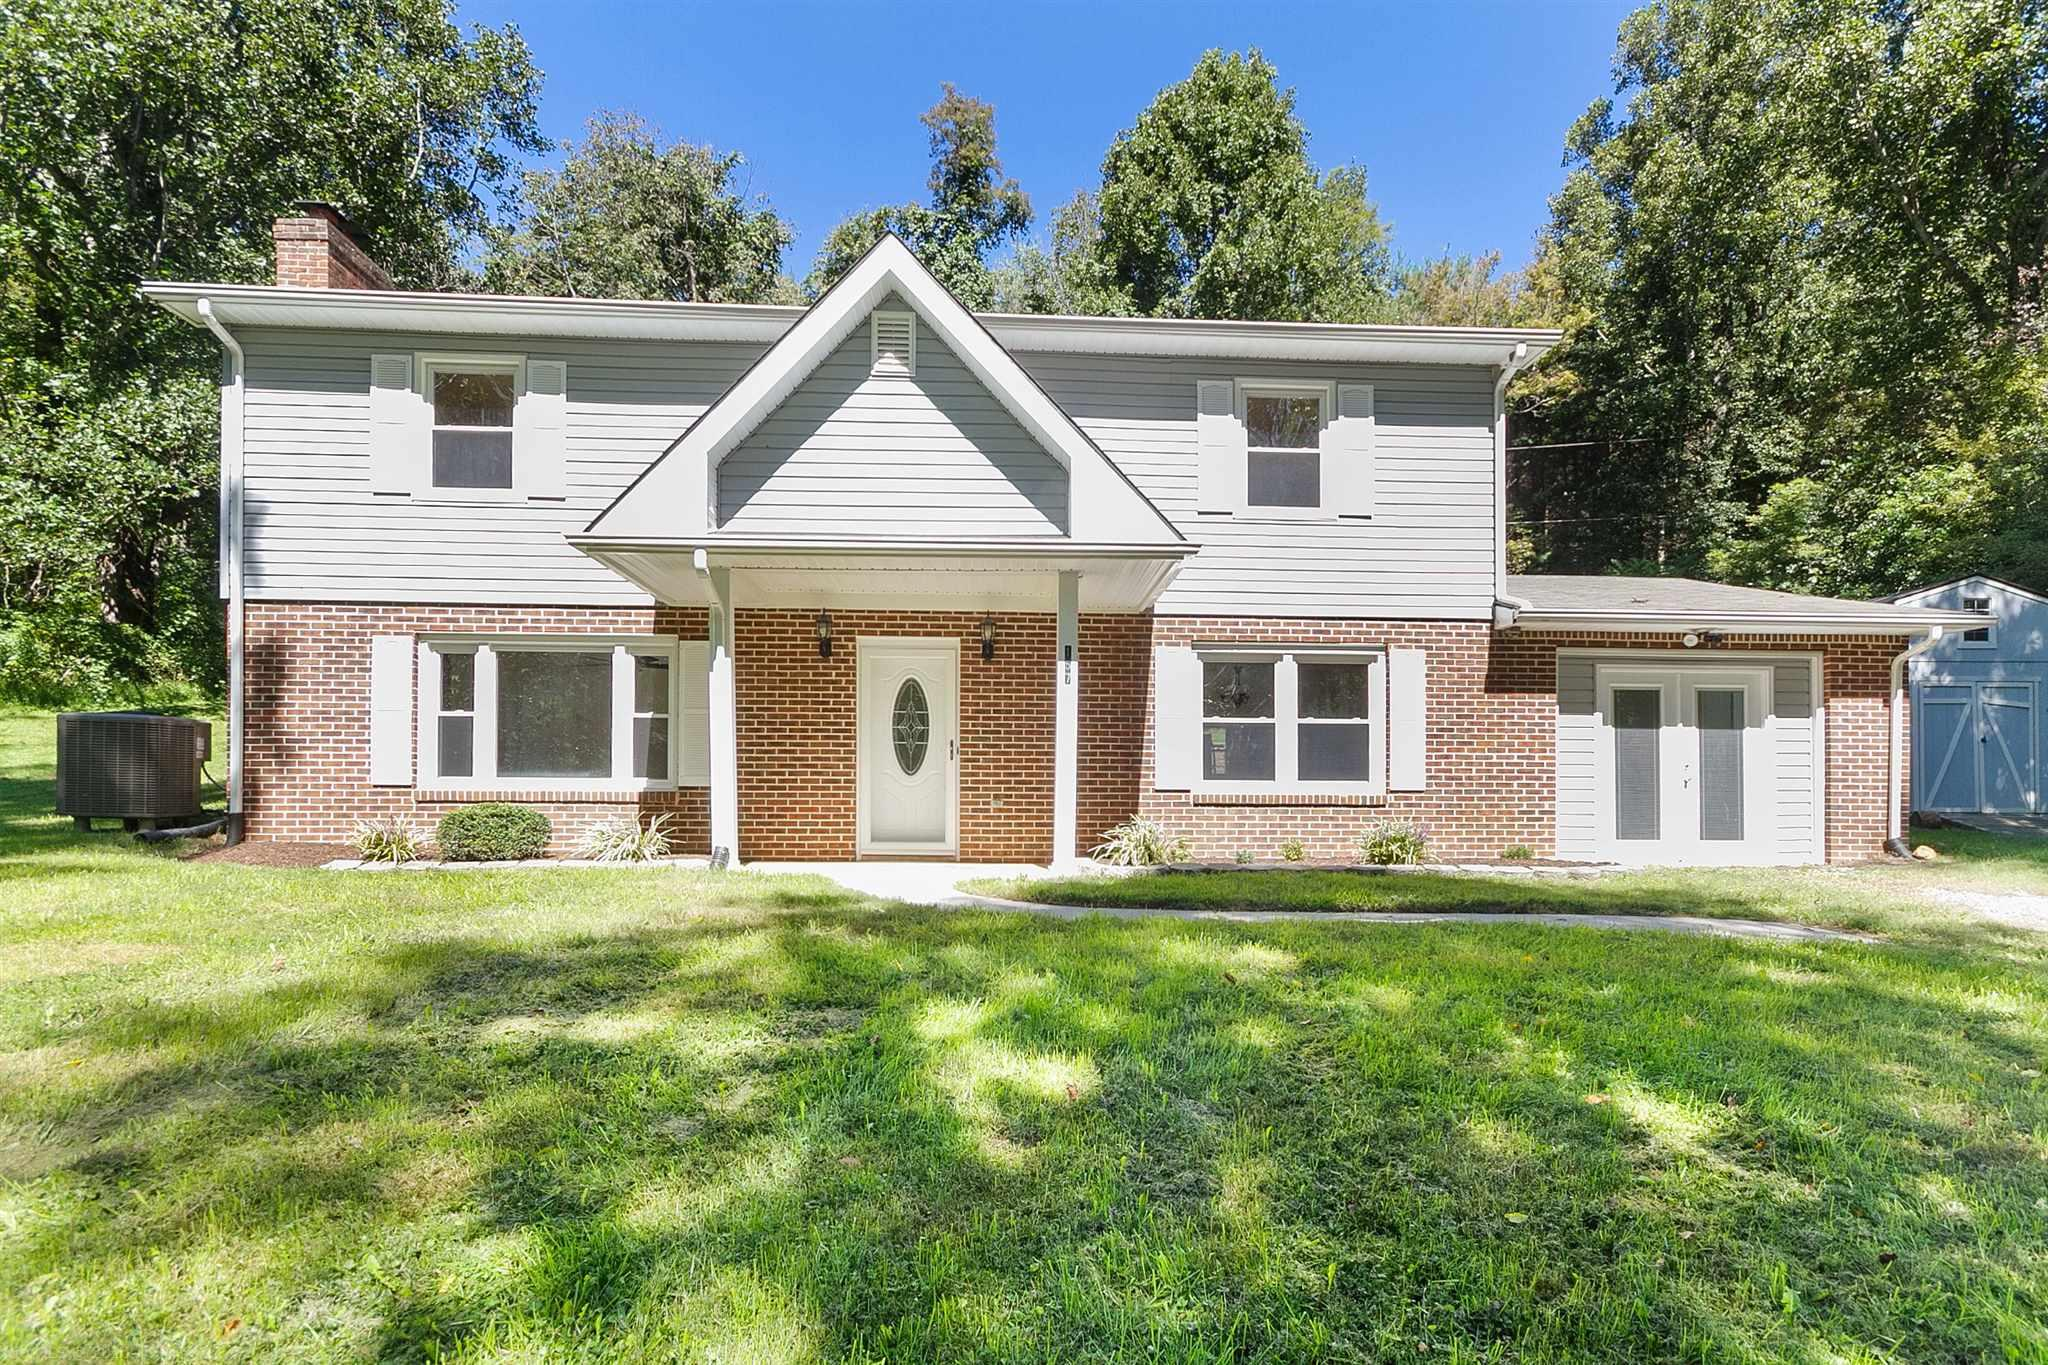 Family room, Living Room and Play room all on the main floor. Vinyl plank flooring on main level. Hardwood floor upper level. 2 full updated on upper level. 4 large bedrooms. Lots of room to spread out. Enjoy cookout or sunning on the versa lock patio.